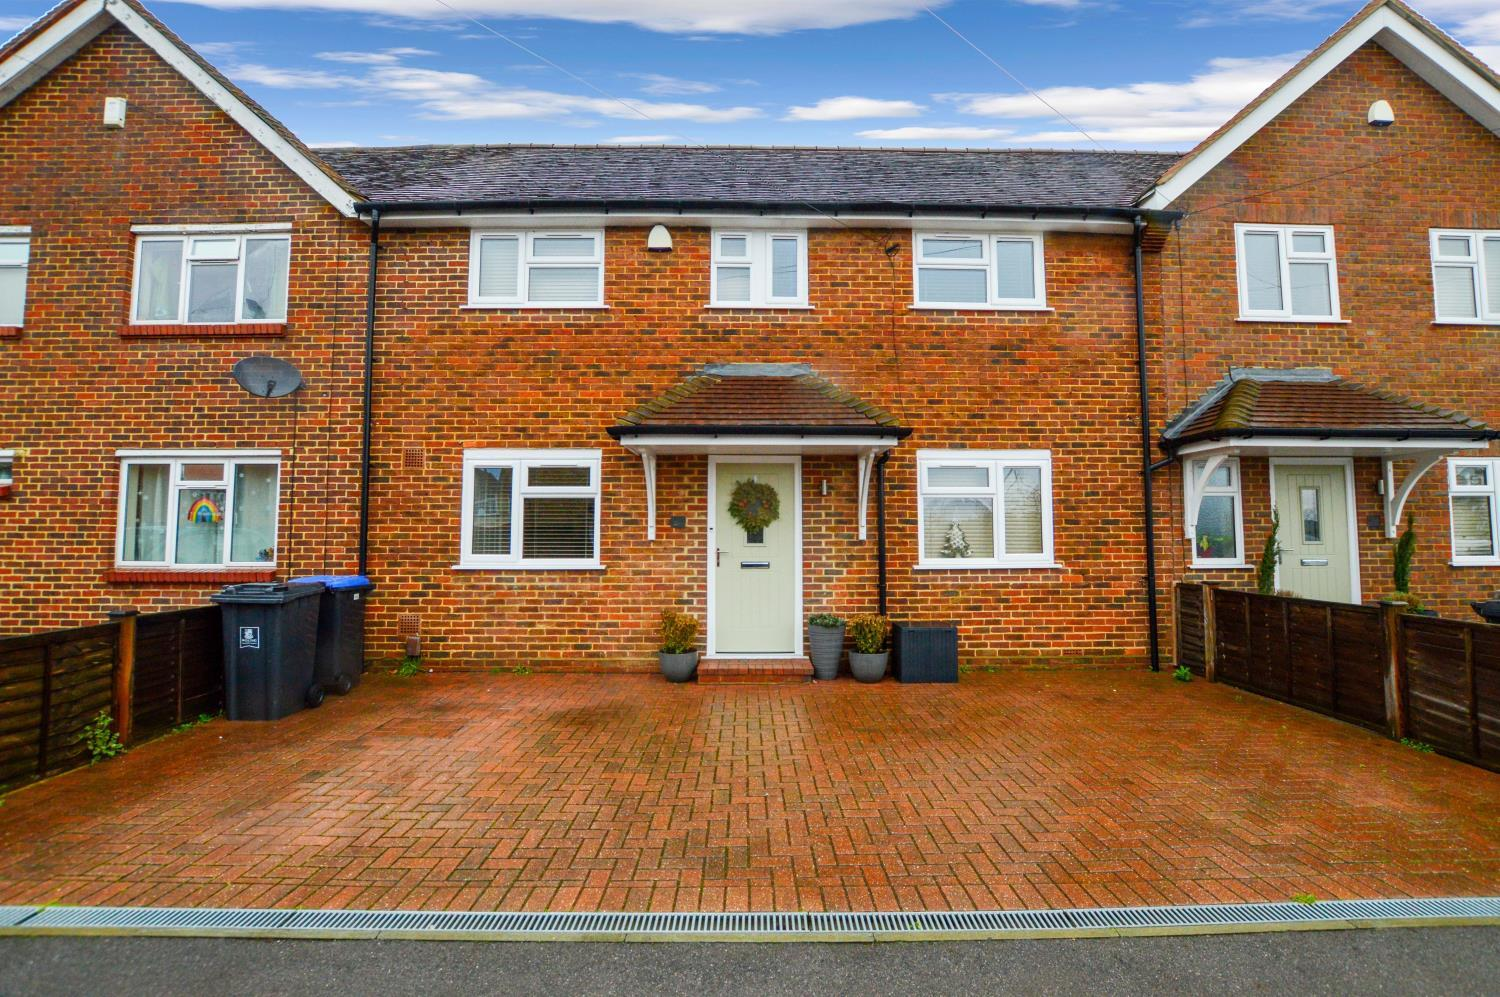 Rydens Way, Woking, Surrey, GU22 Image 1